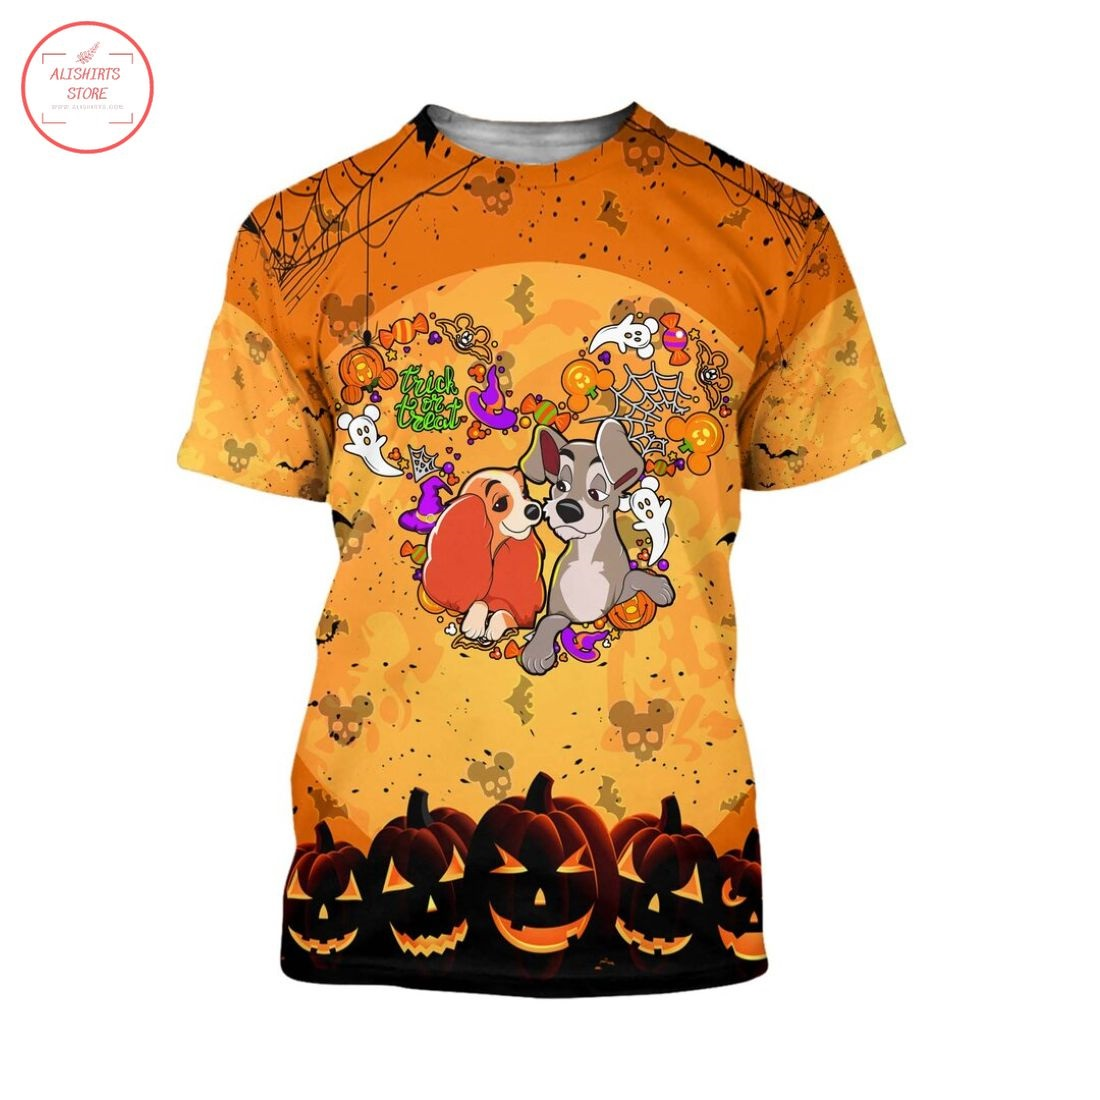 Lady and The Tramp Disney Halloween Shirt